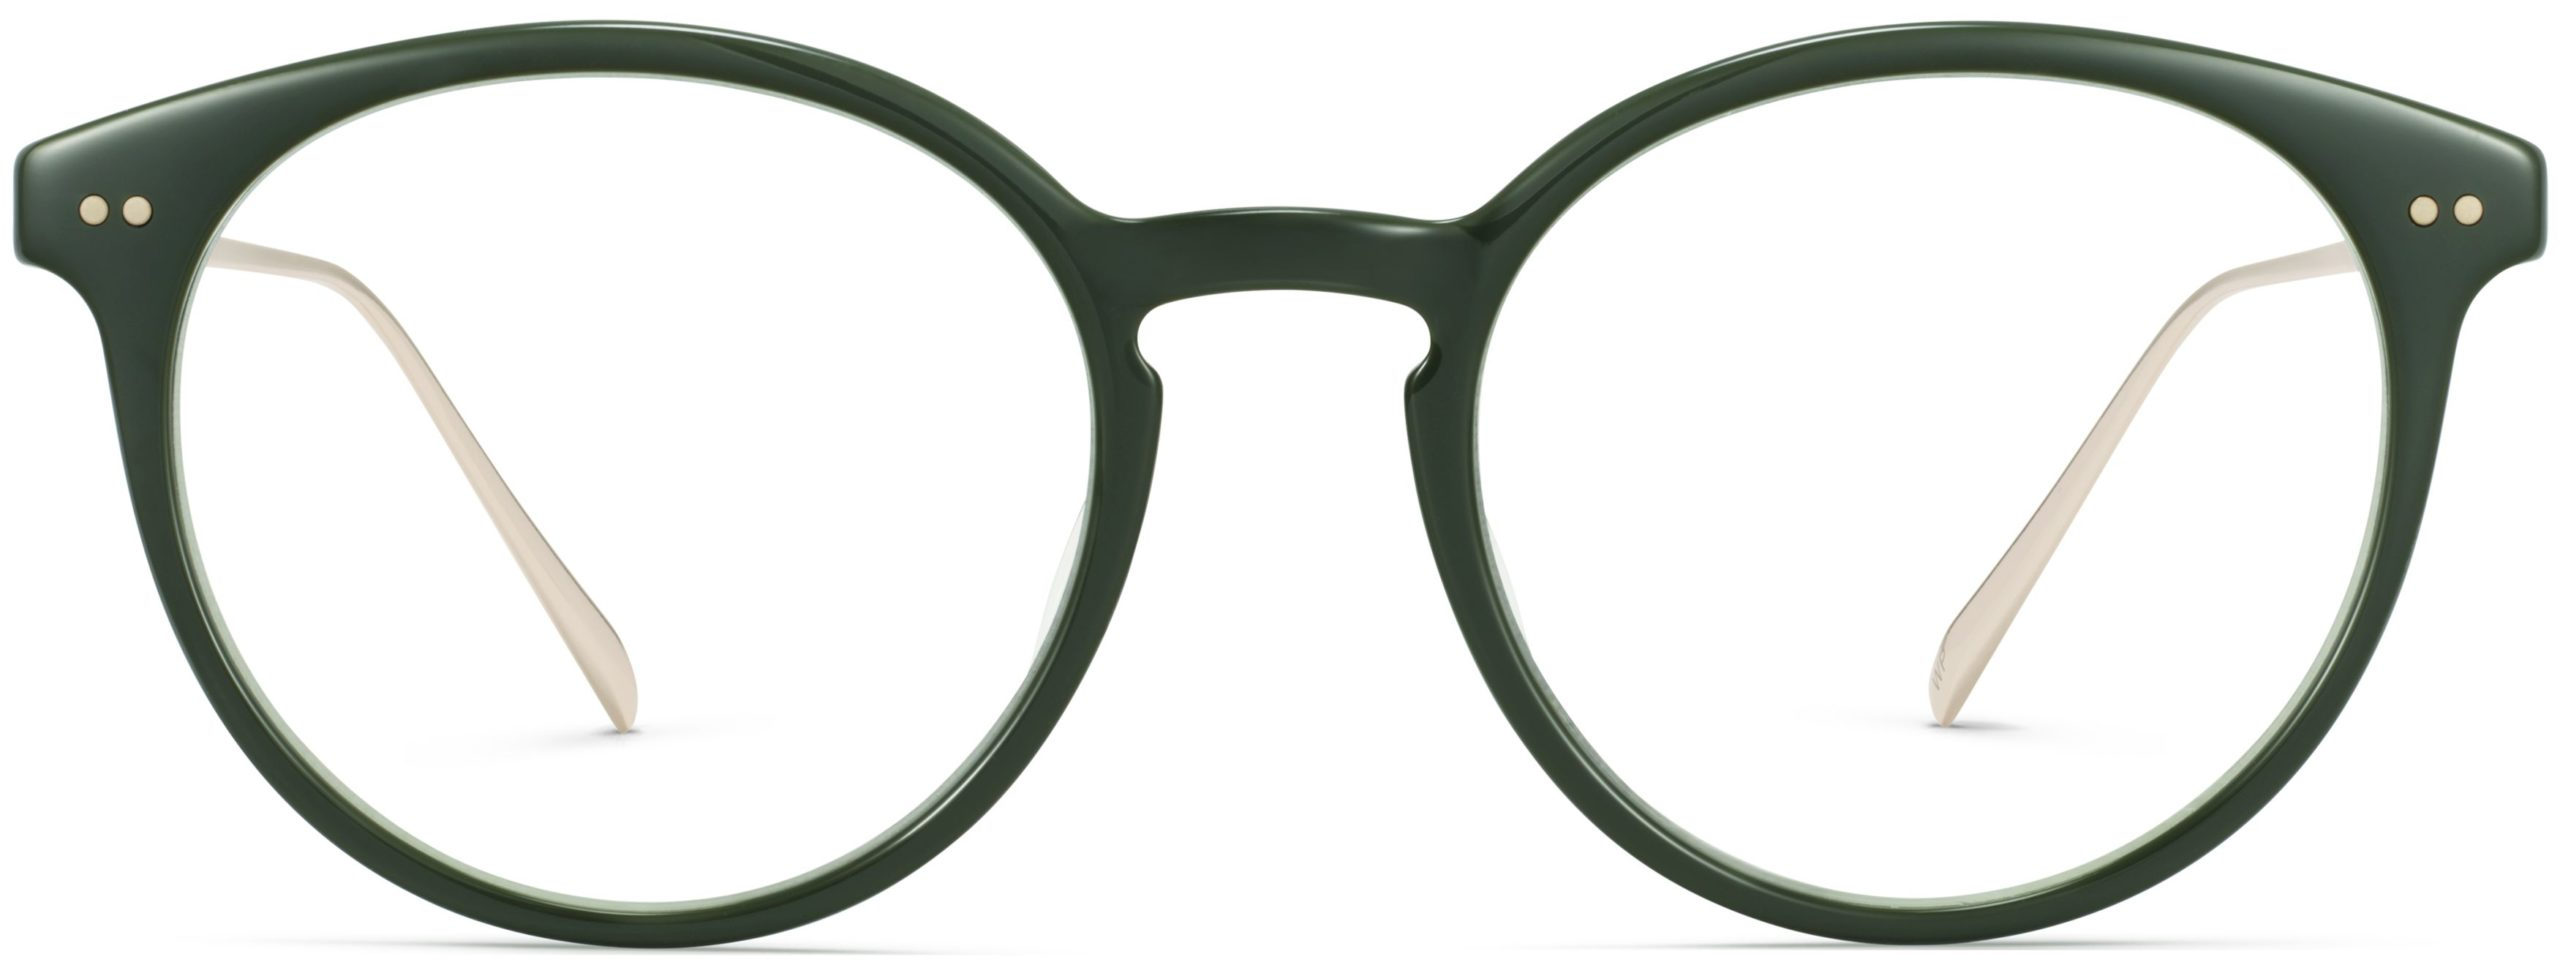 Front View Image of Langley Eyeglasses Collection, by Warby Parker Brand, in Magnolia Green with Polished Gold Color